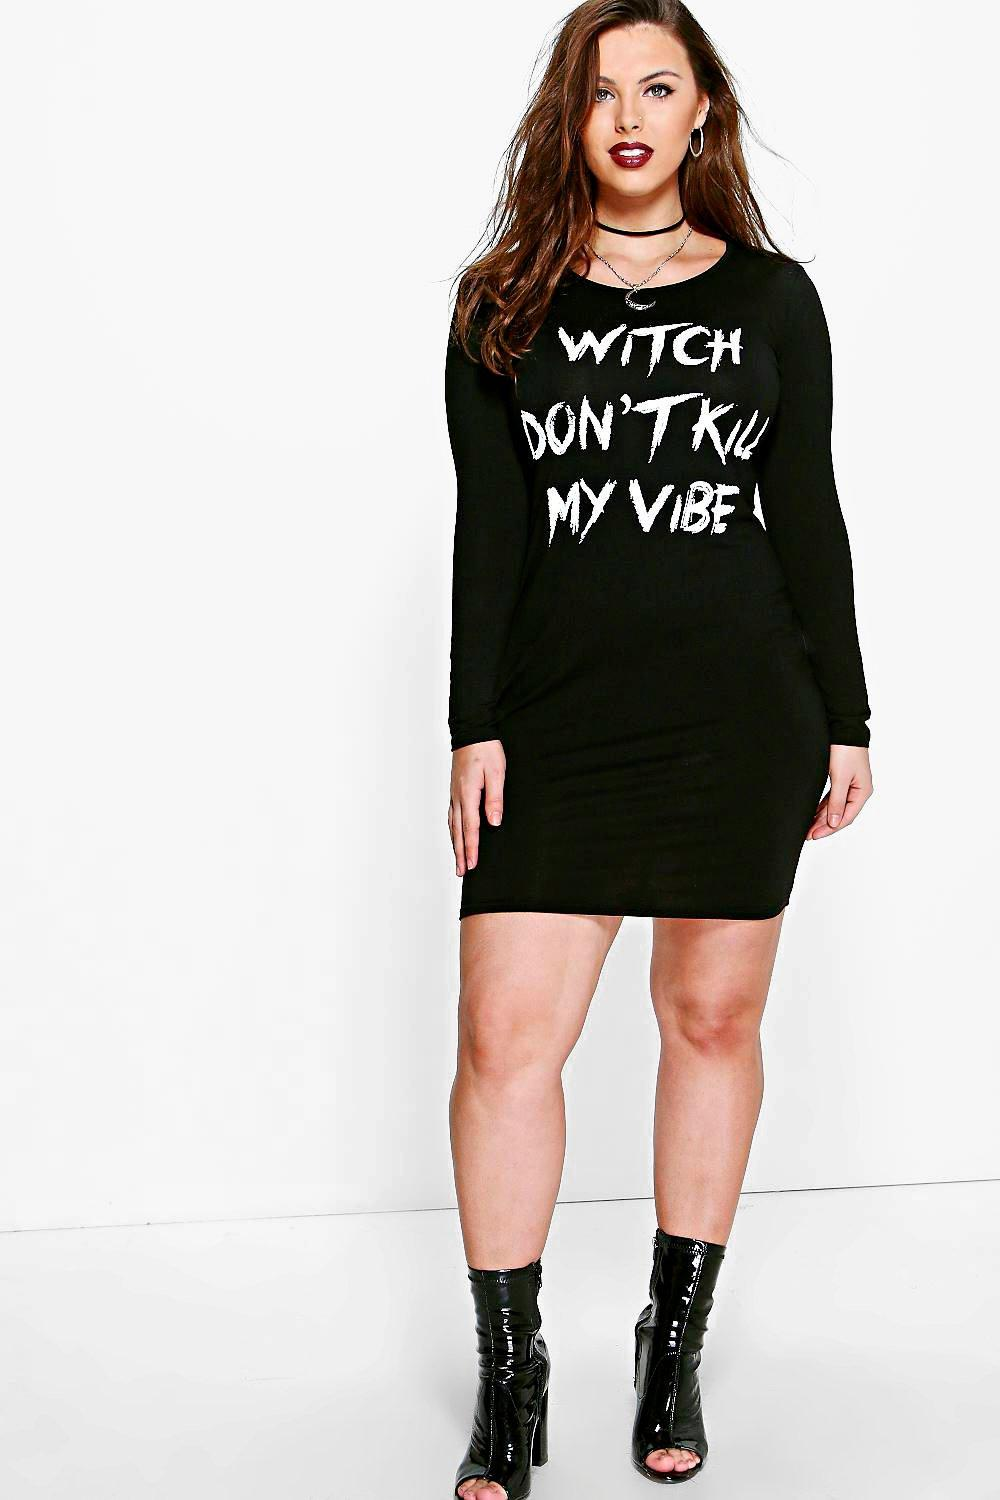 Plus Nat 'Witch Dont Kill My Vibe' Halloween Dress